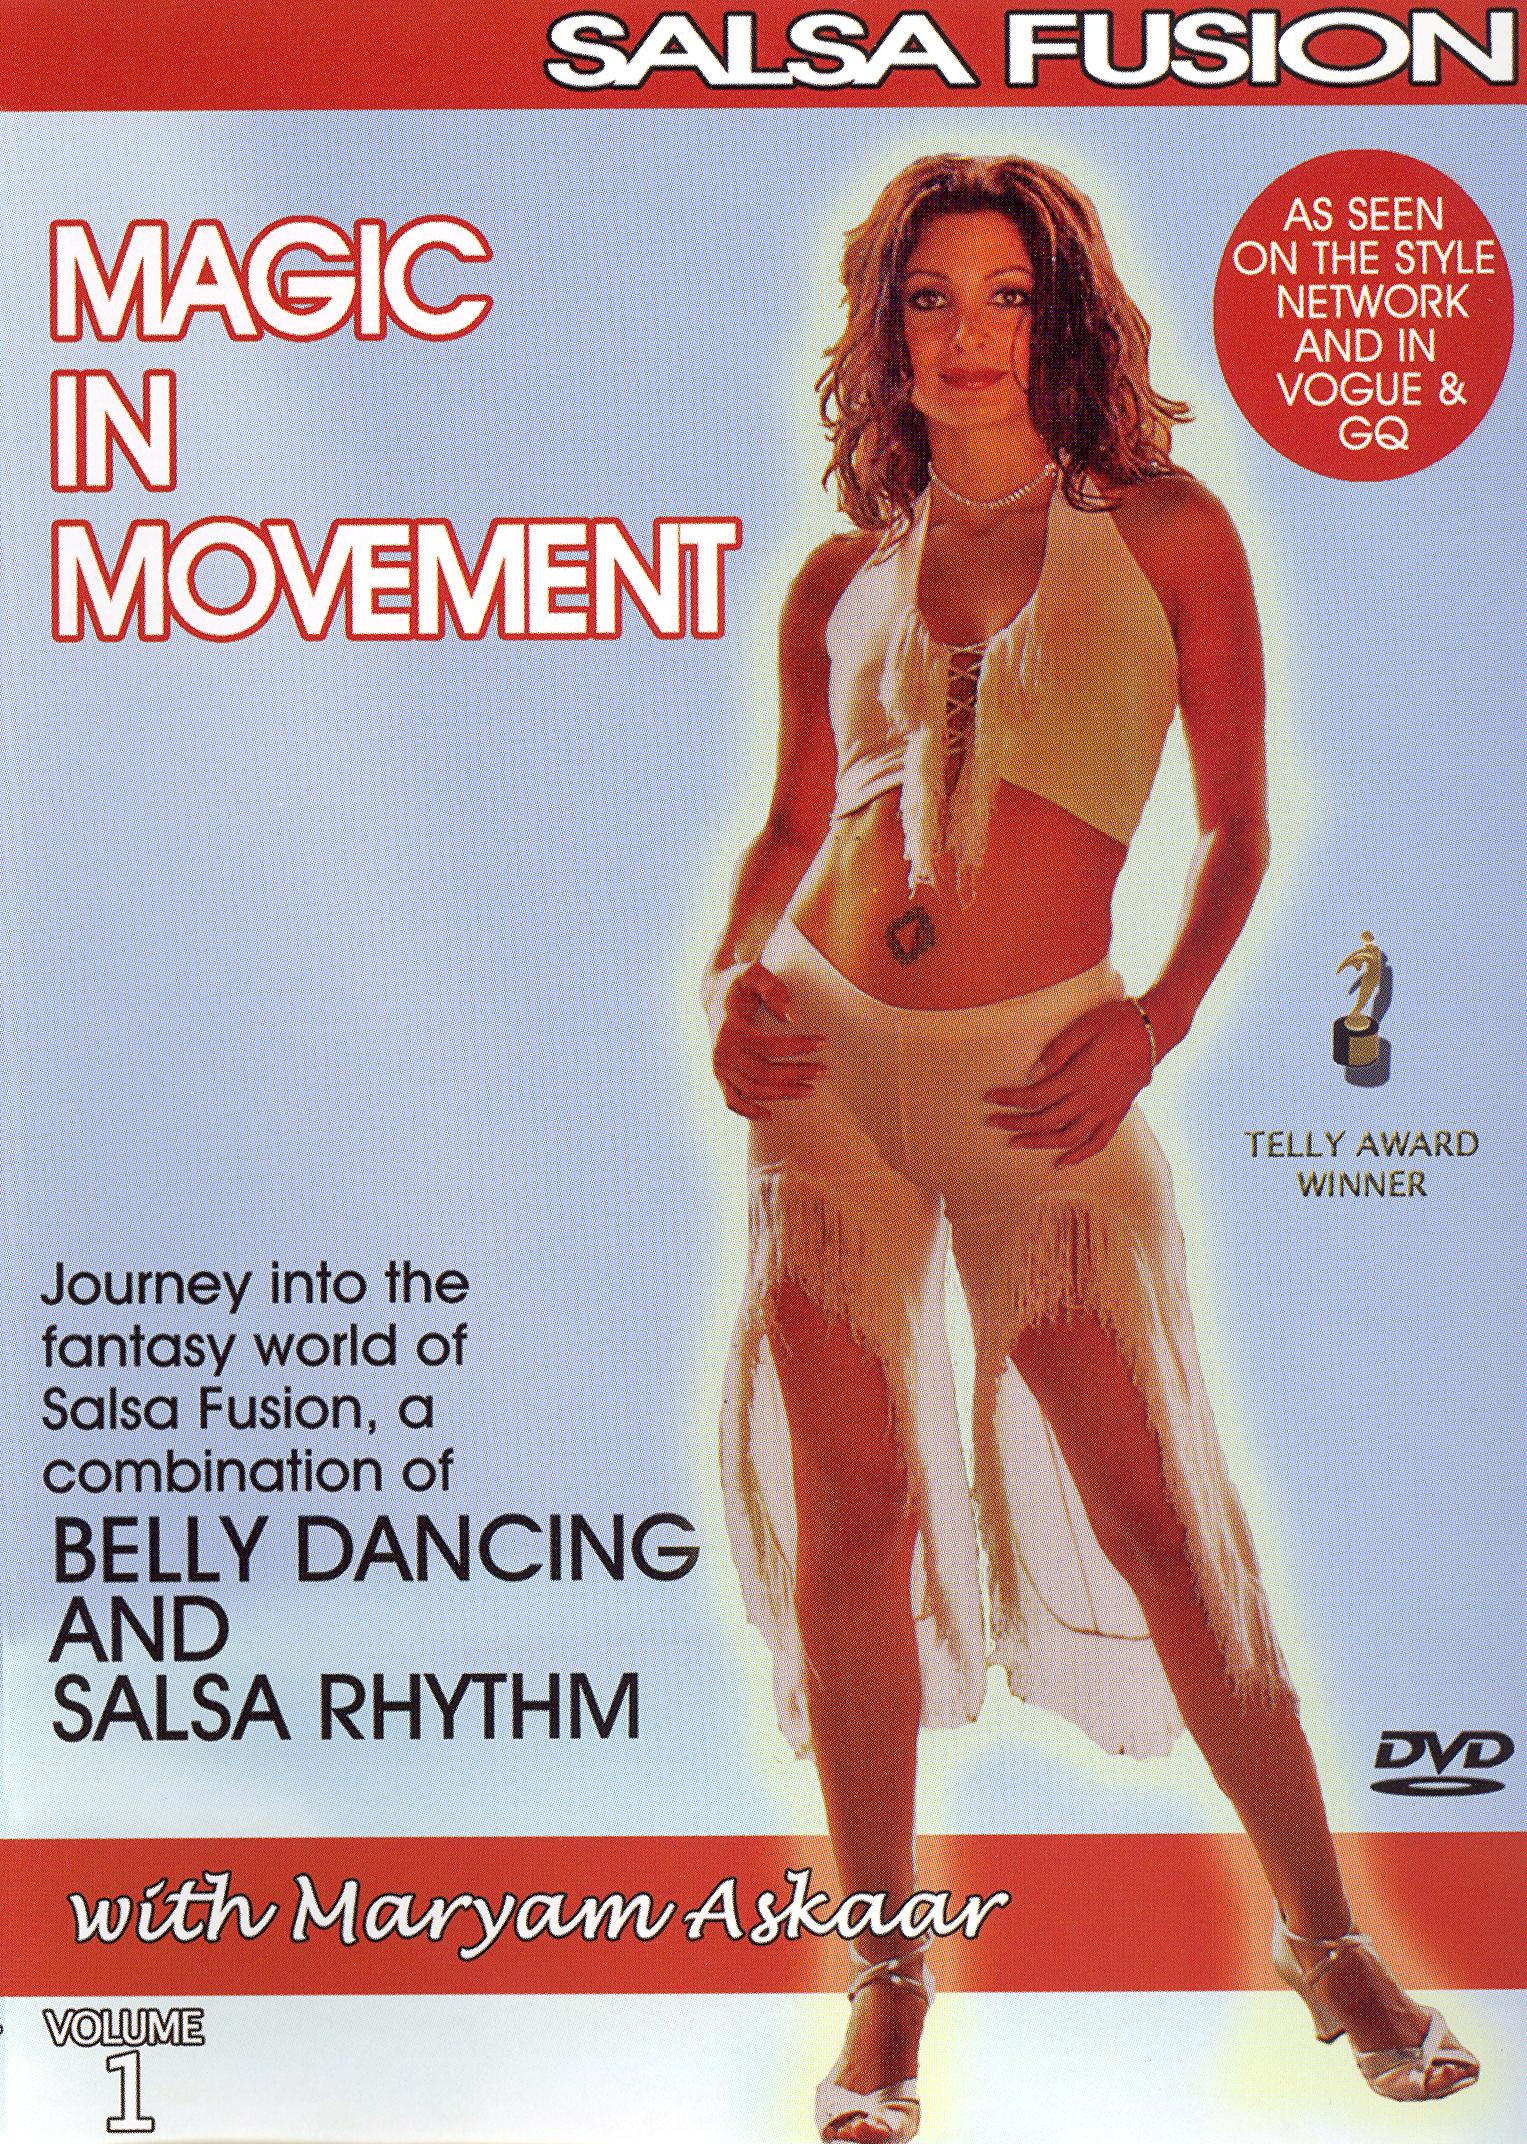 Salsa Fusion: Magic in Movement